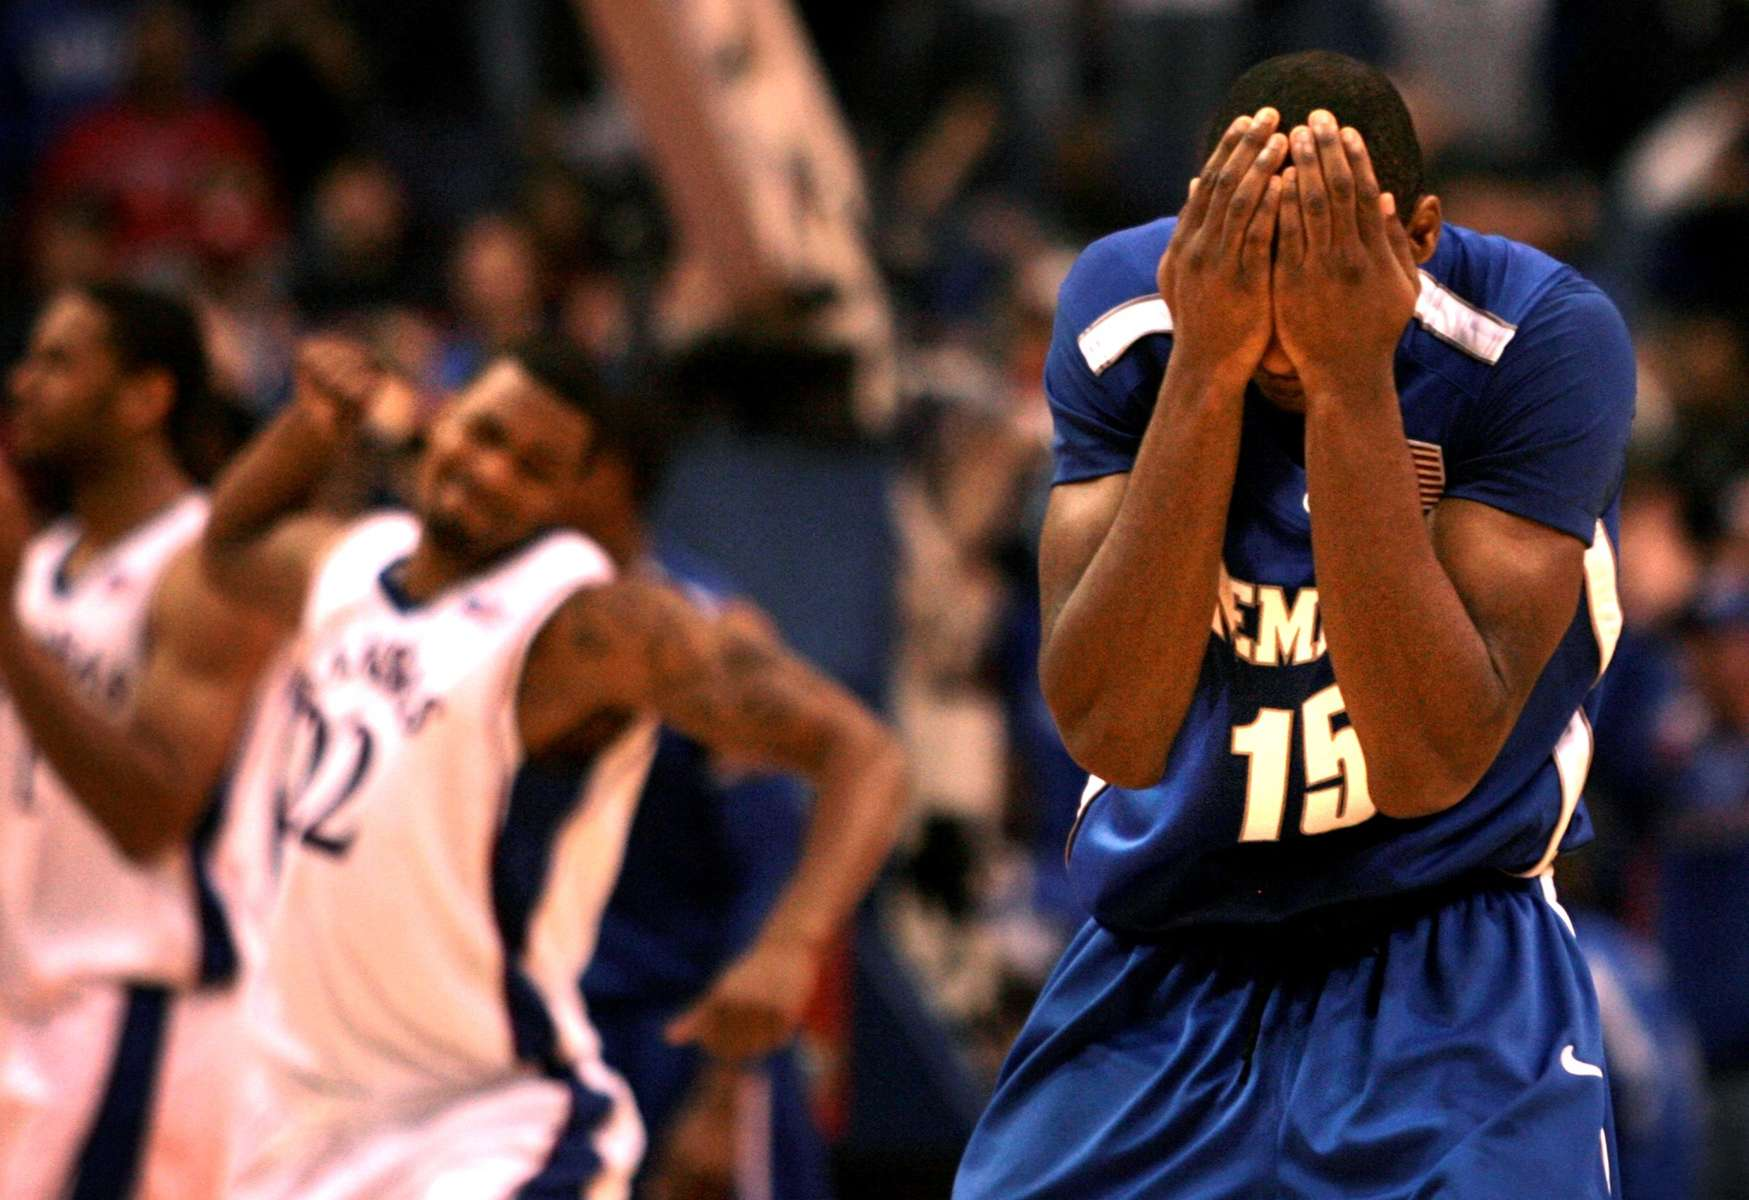 Memphis's Elliot Williams holds his head in frustration after missing the potential game winning shot at the end of the game between the Memphis Tigers and Kansas Jayhawks at the Basketball Hall of Fame Classic in the Scottrade Center in St. Louis, Mo. Tuesday November 17, 2009.